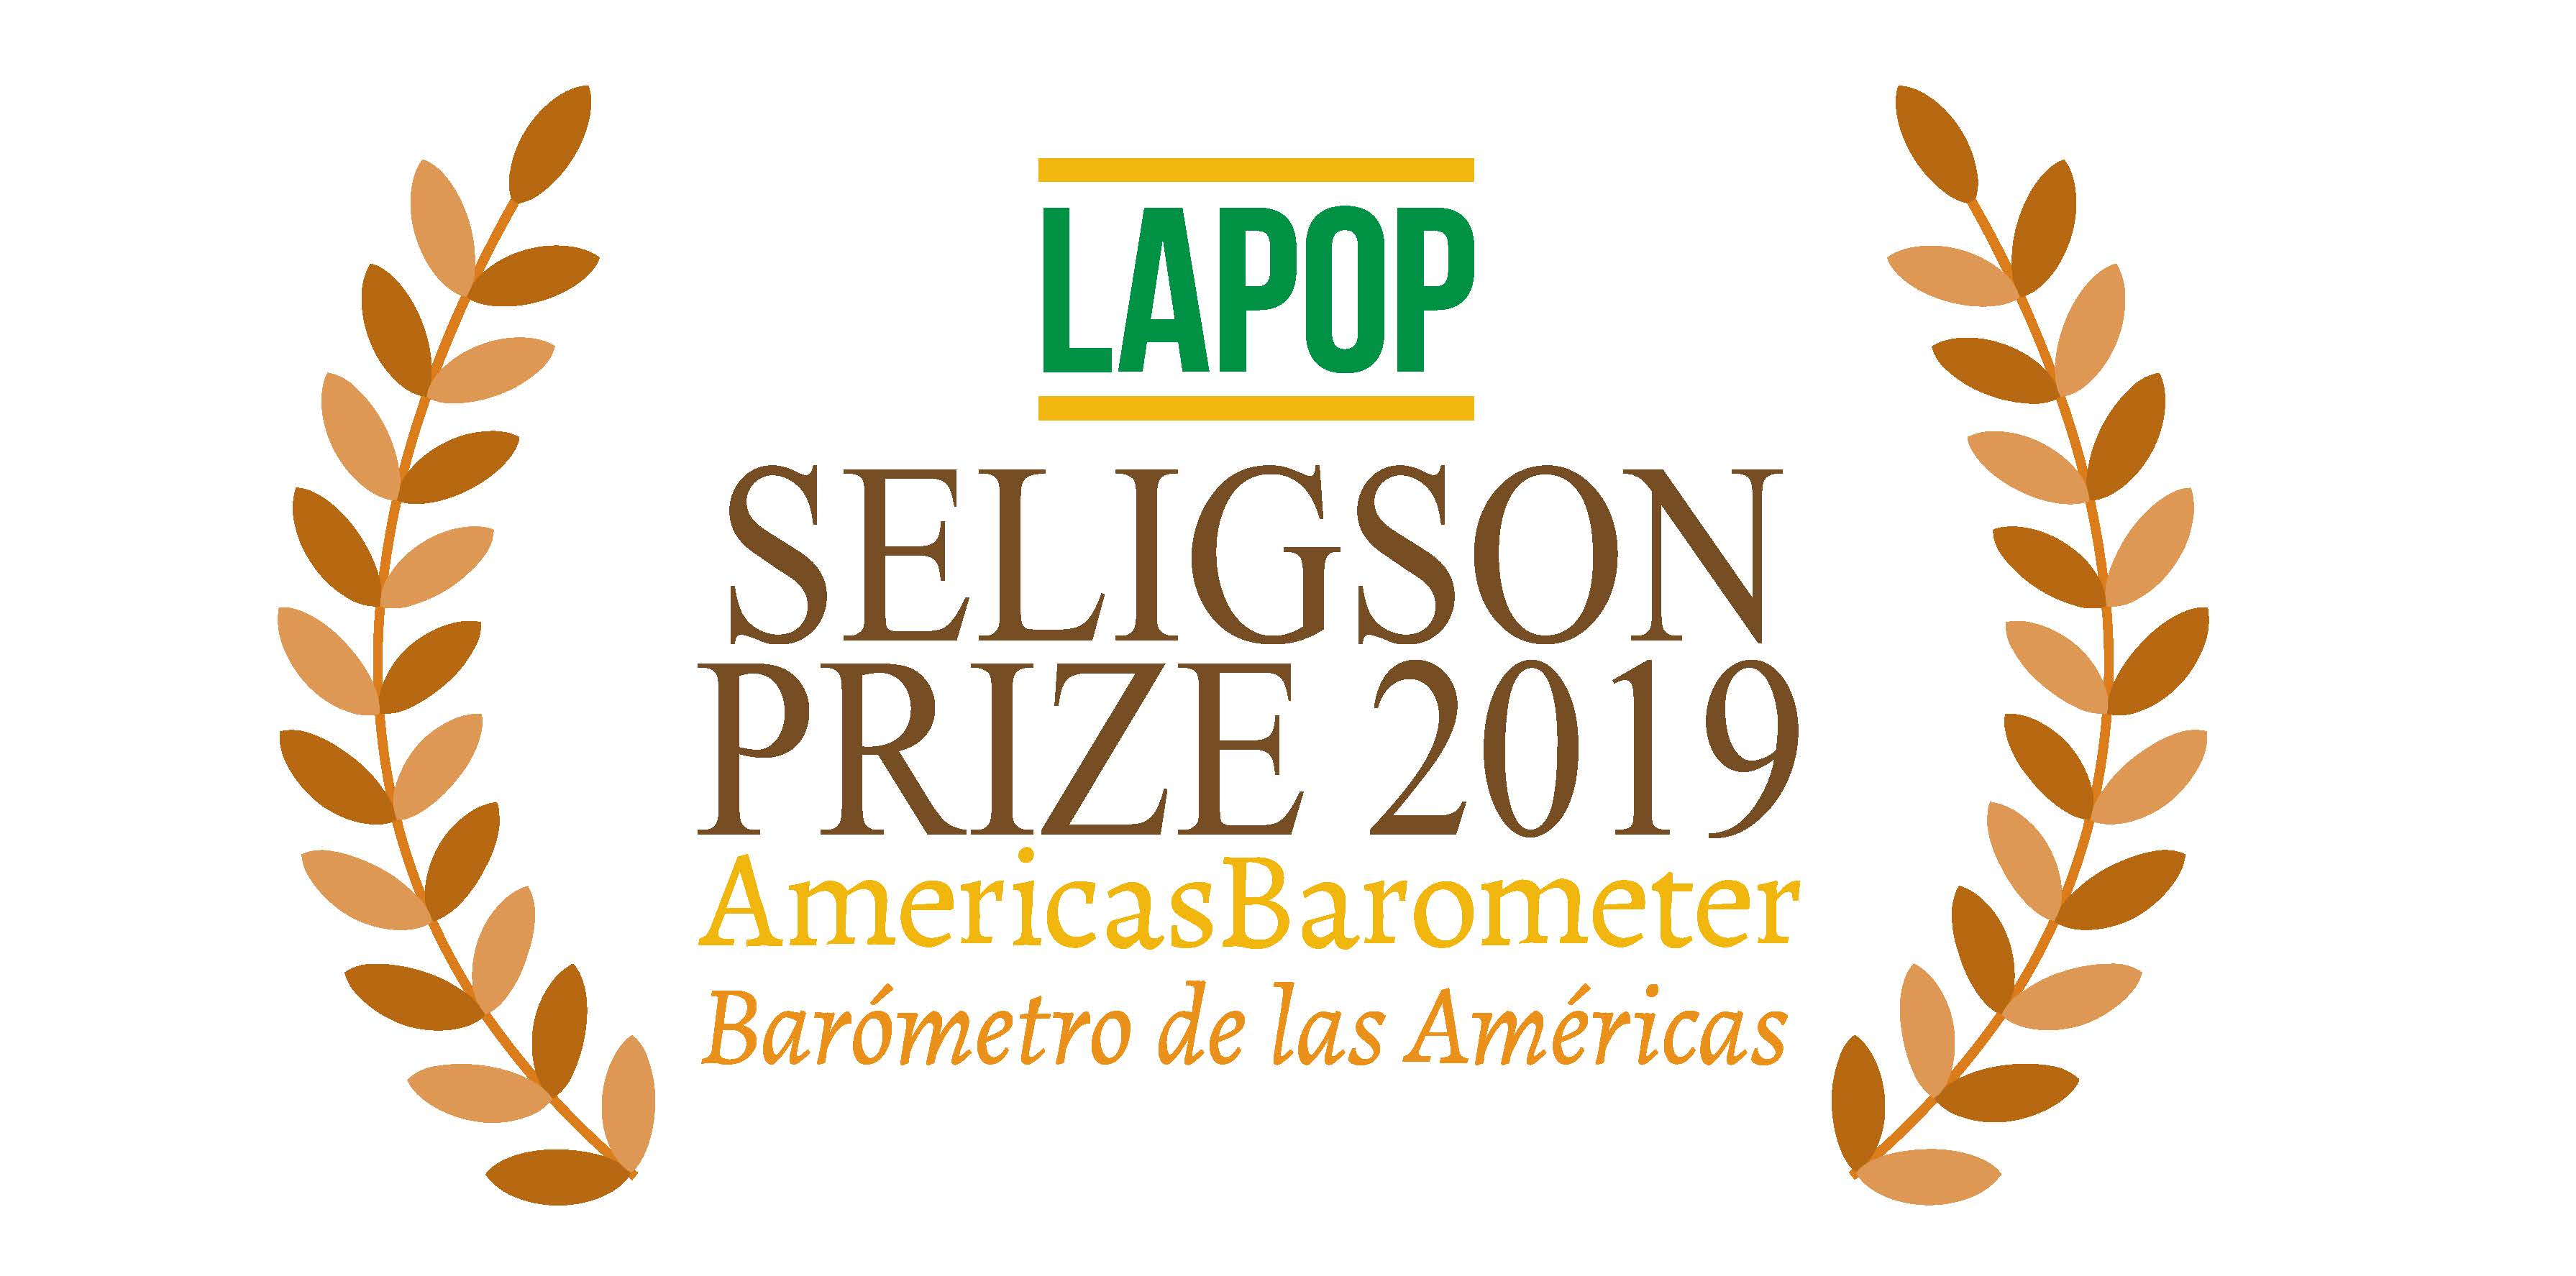 LAPOP is pleased to announce a competition for this year's Seligson Prize. Click for the full announcement.